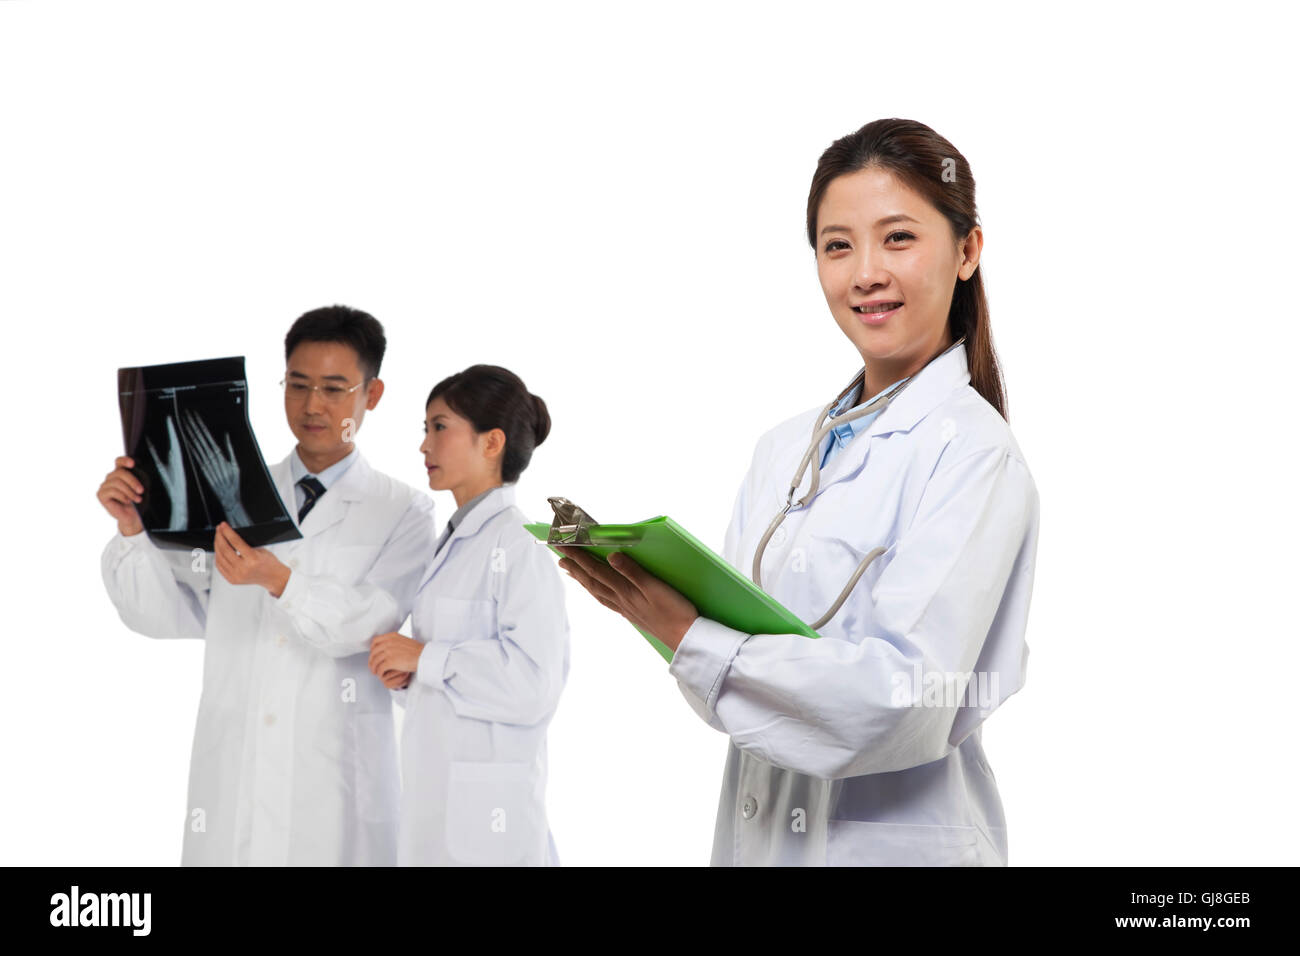 Professionals - Stock Image